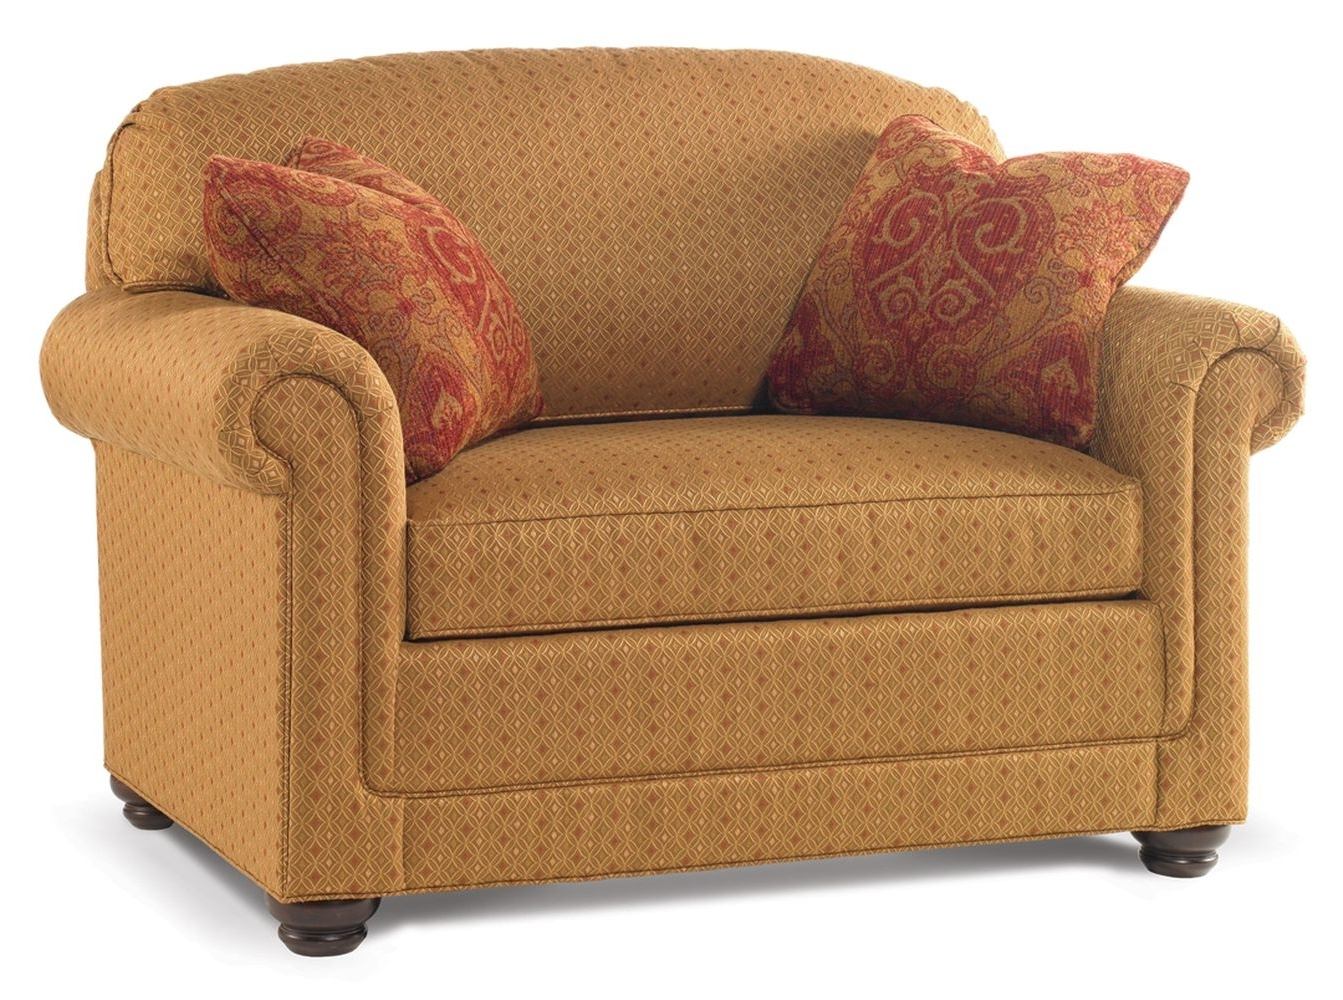 Small Twin Sleeper Sofas Chairs With Pillow And Storage Plus Brown Inside Well Known Sofas And Chairs (View 12 of 15)